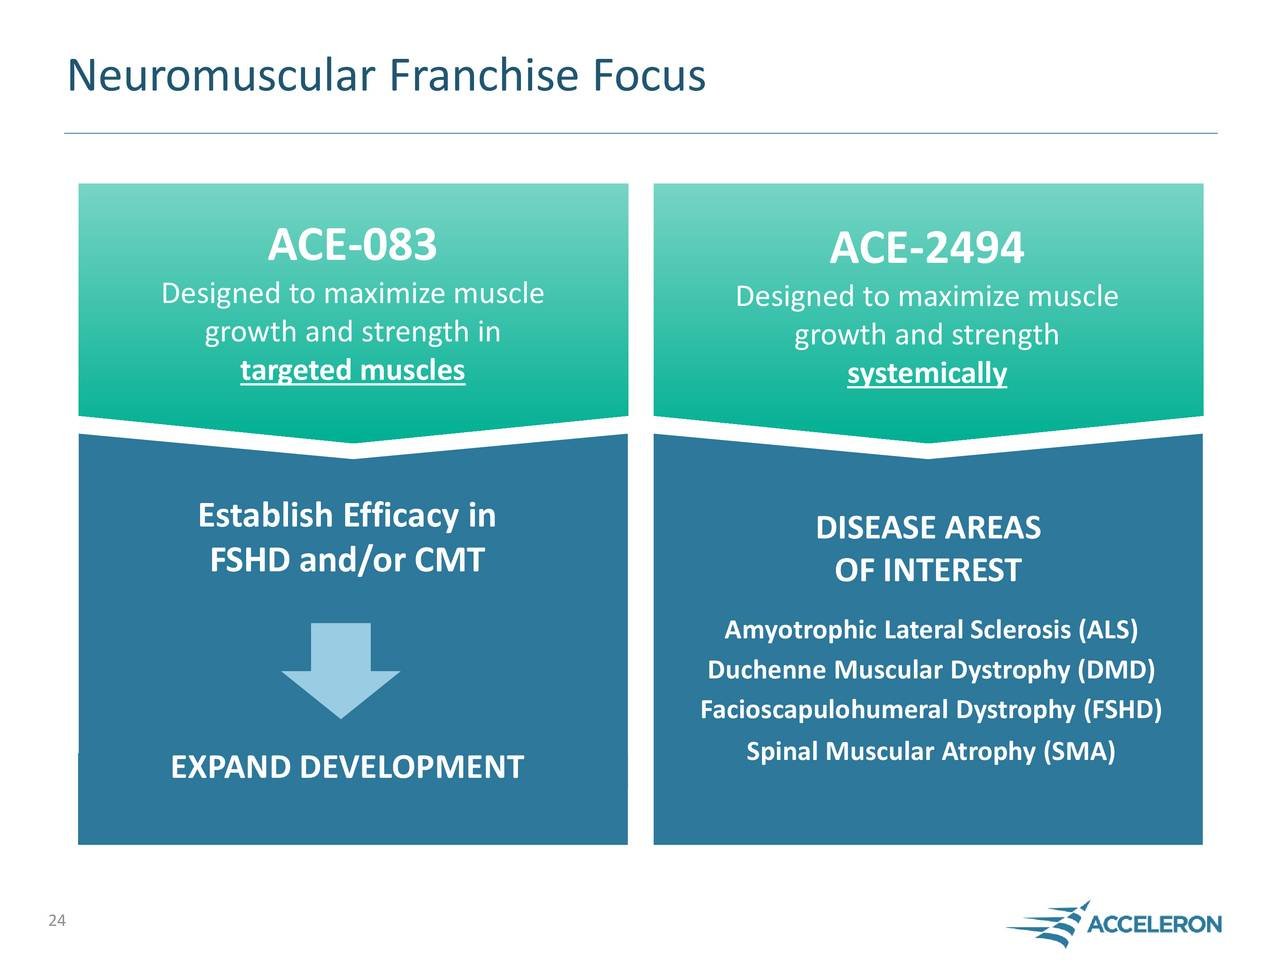 Duchenne Muscular Dystrophy Quotes Acceleron Pharma Xlrn R Andd Day Slideshow Acceleron